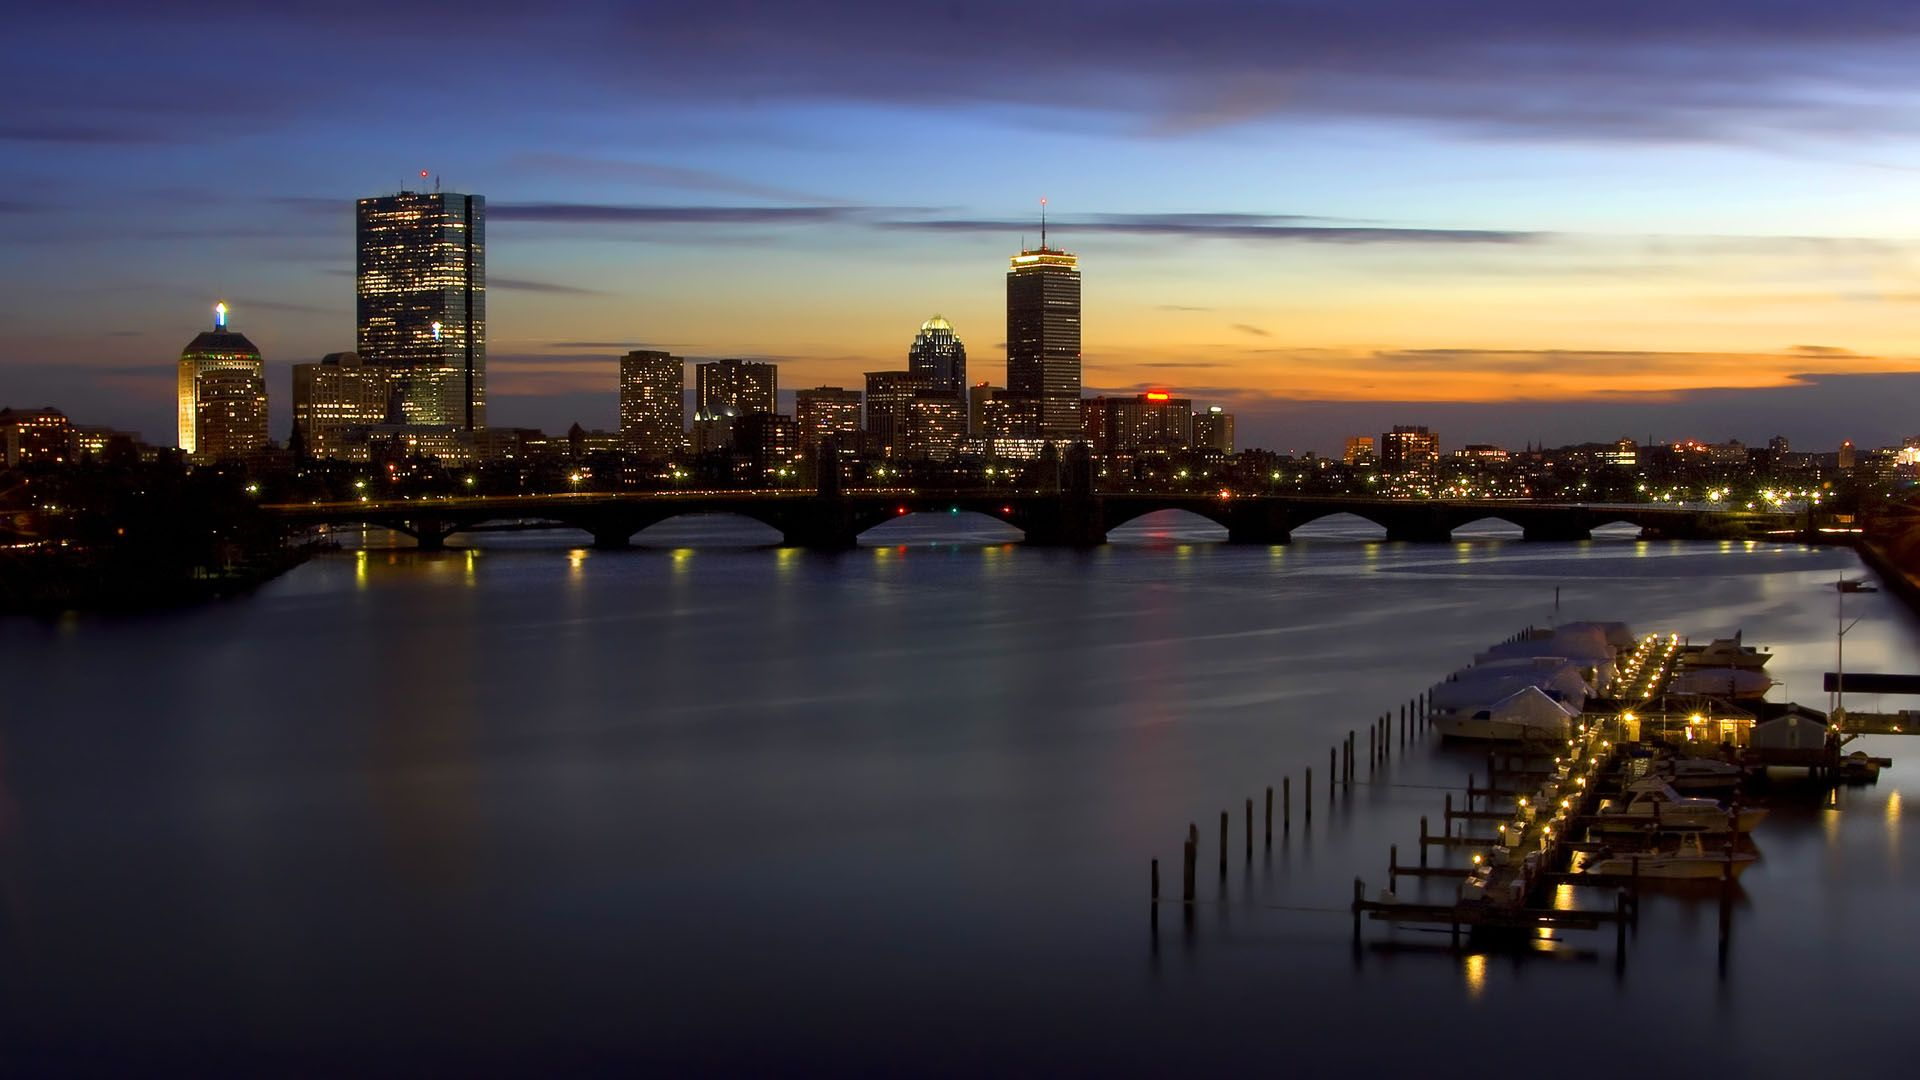 Mac Wallpaper Boston Charles River Night 1920x1080 Download Hd Wallpaper Wallpapertip